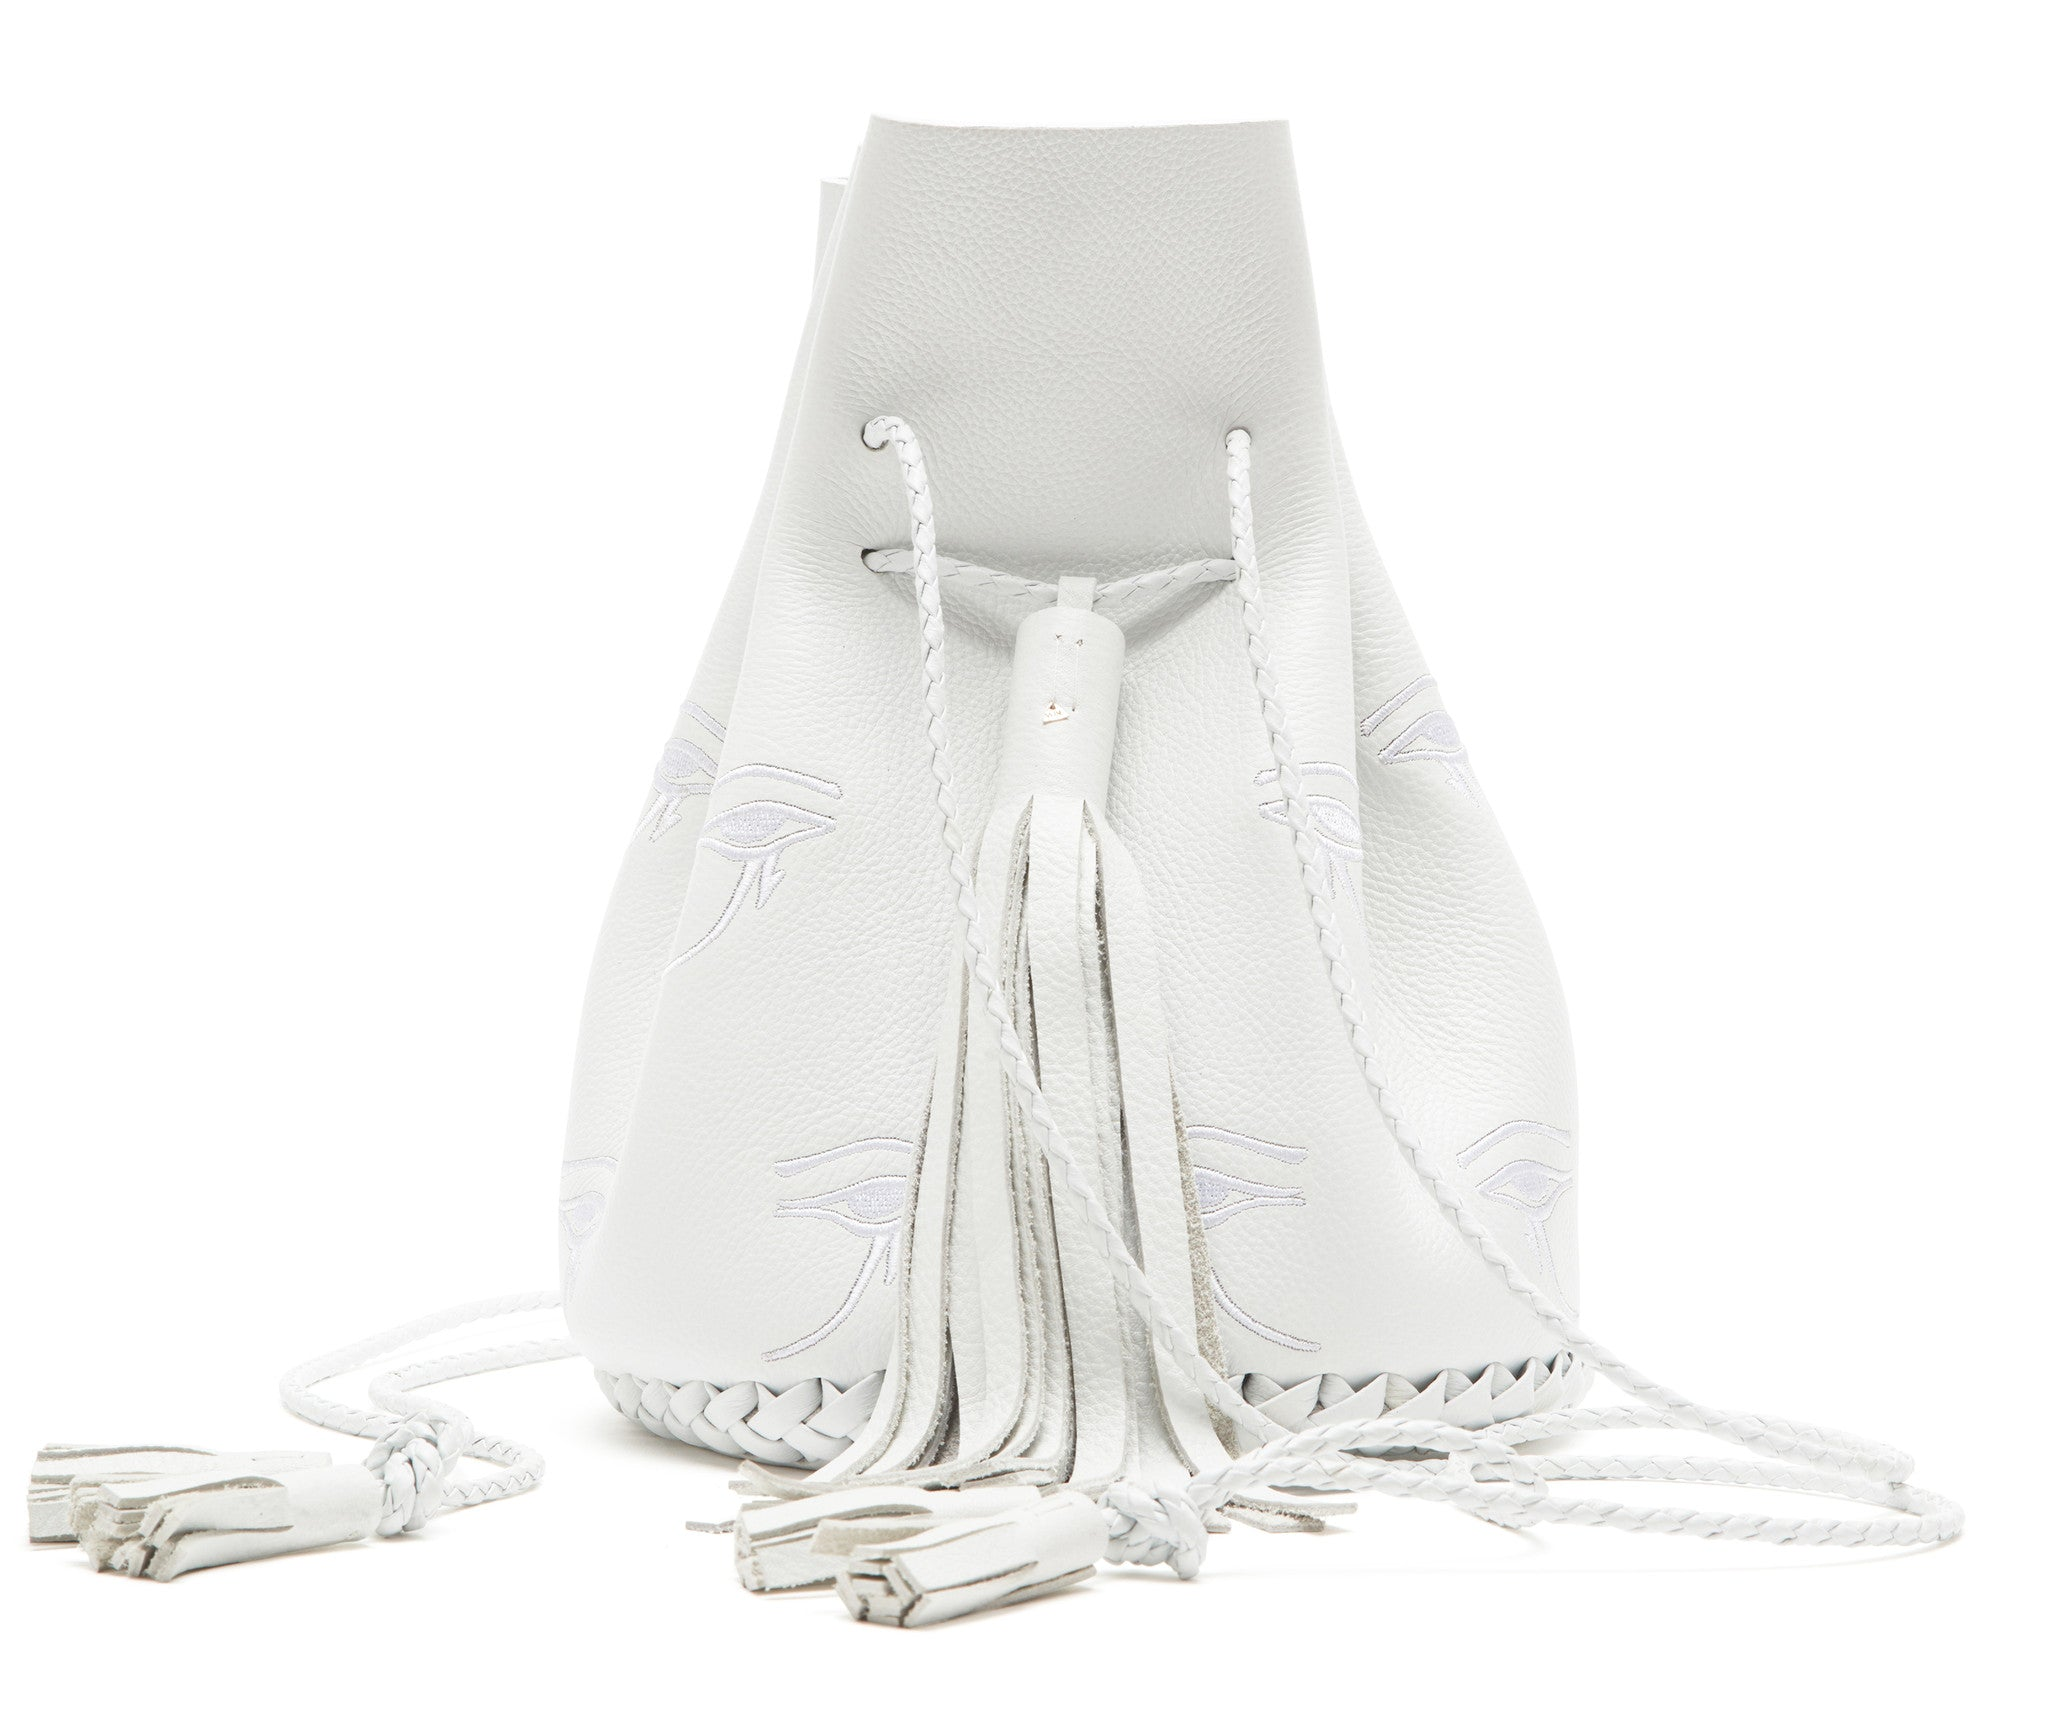 Silver White Embroidered Egyptian Eye of Horus Leather Bullet Bucket Bag Wendy Nichol Handbag Purse Designer Handmade in NYC New York City Bucket Bag Barneys Barney's Madonna Desperately Seeking Susan Evil Eye Eyeballs Drawstring Bucket Pouch Purse Handbag Leather Large Fringe Tassel Summer